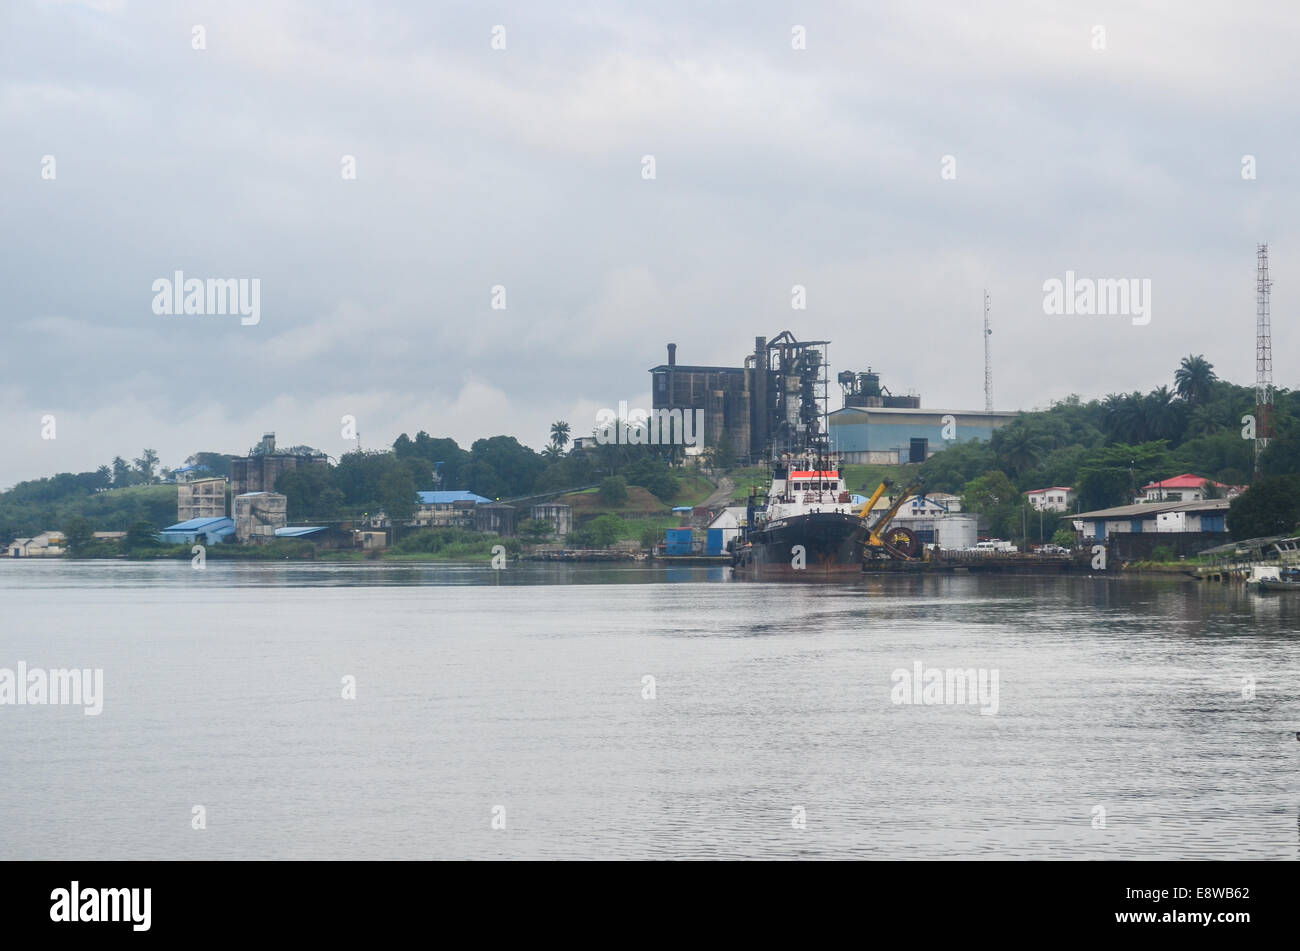 Cross River, where the oil pipelines run, and factory/plant, in Calabar, Nigeria - Stock Image